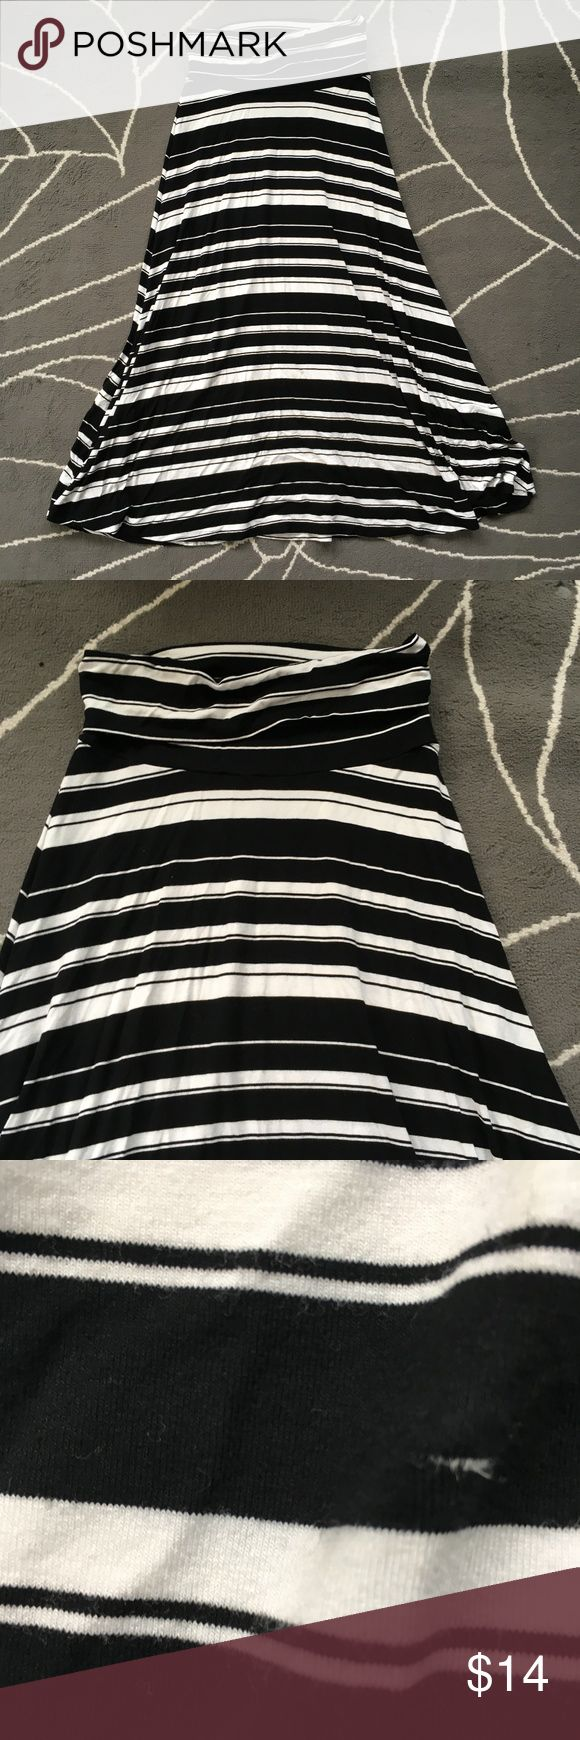 Black and White Stripped Maxi Skirt Cute skirt, no brand tag. Fits like a M-L. Stretchy and comfy - offers welcome! No Brand Skirts Maxi